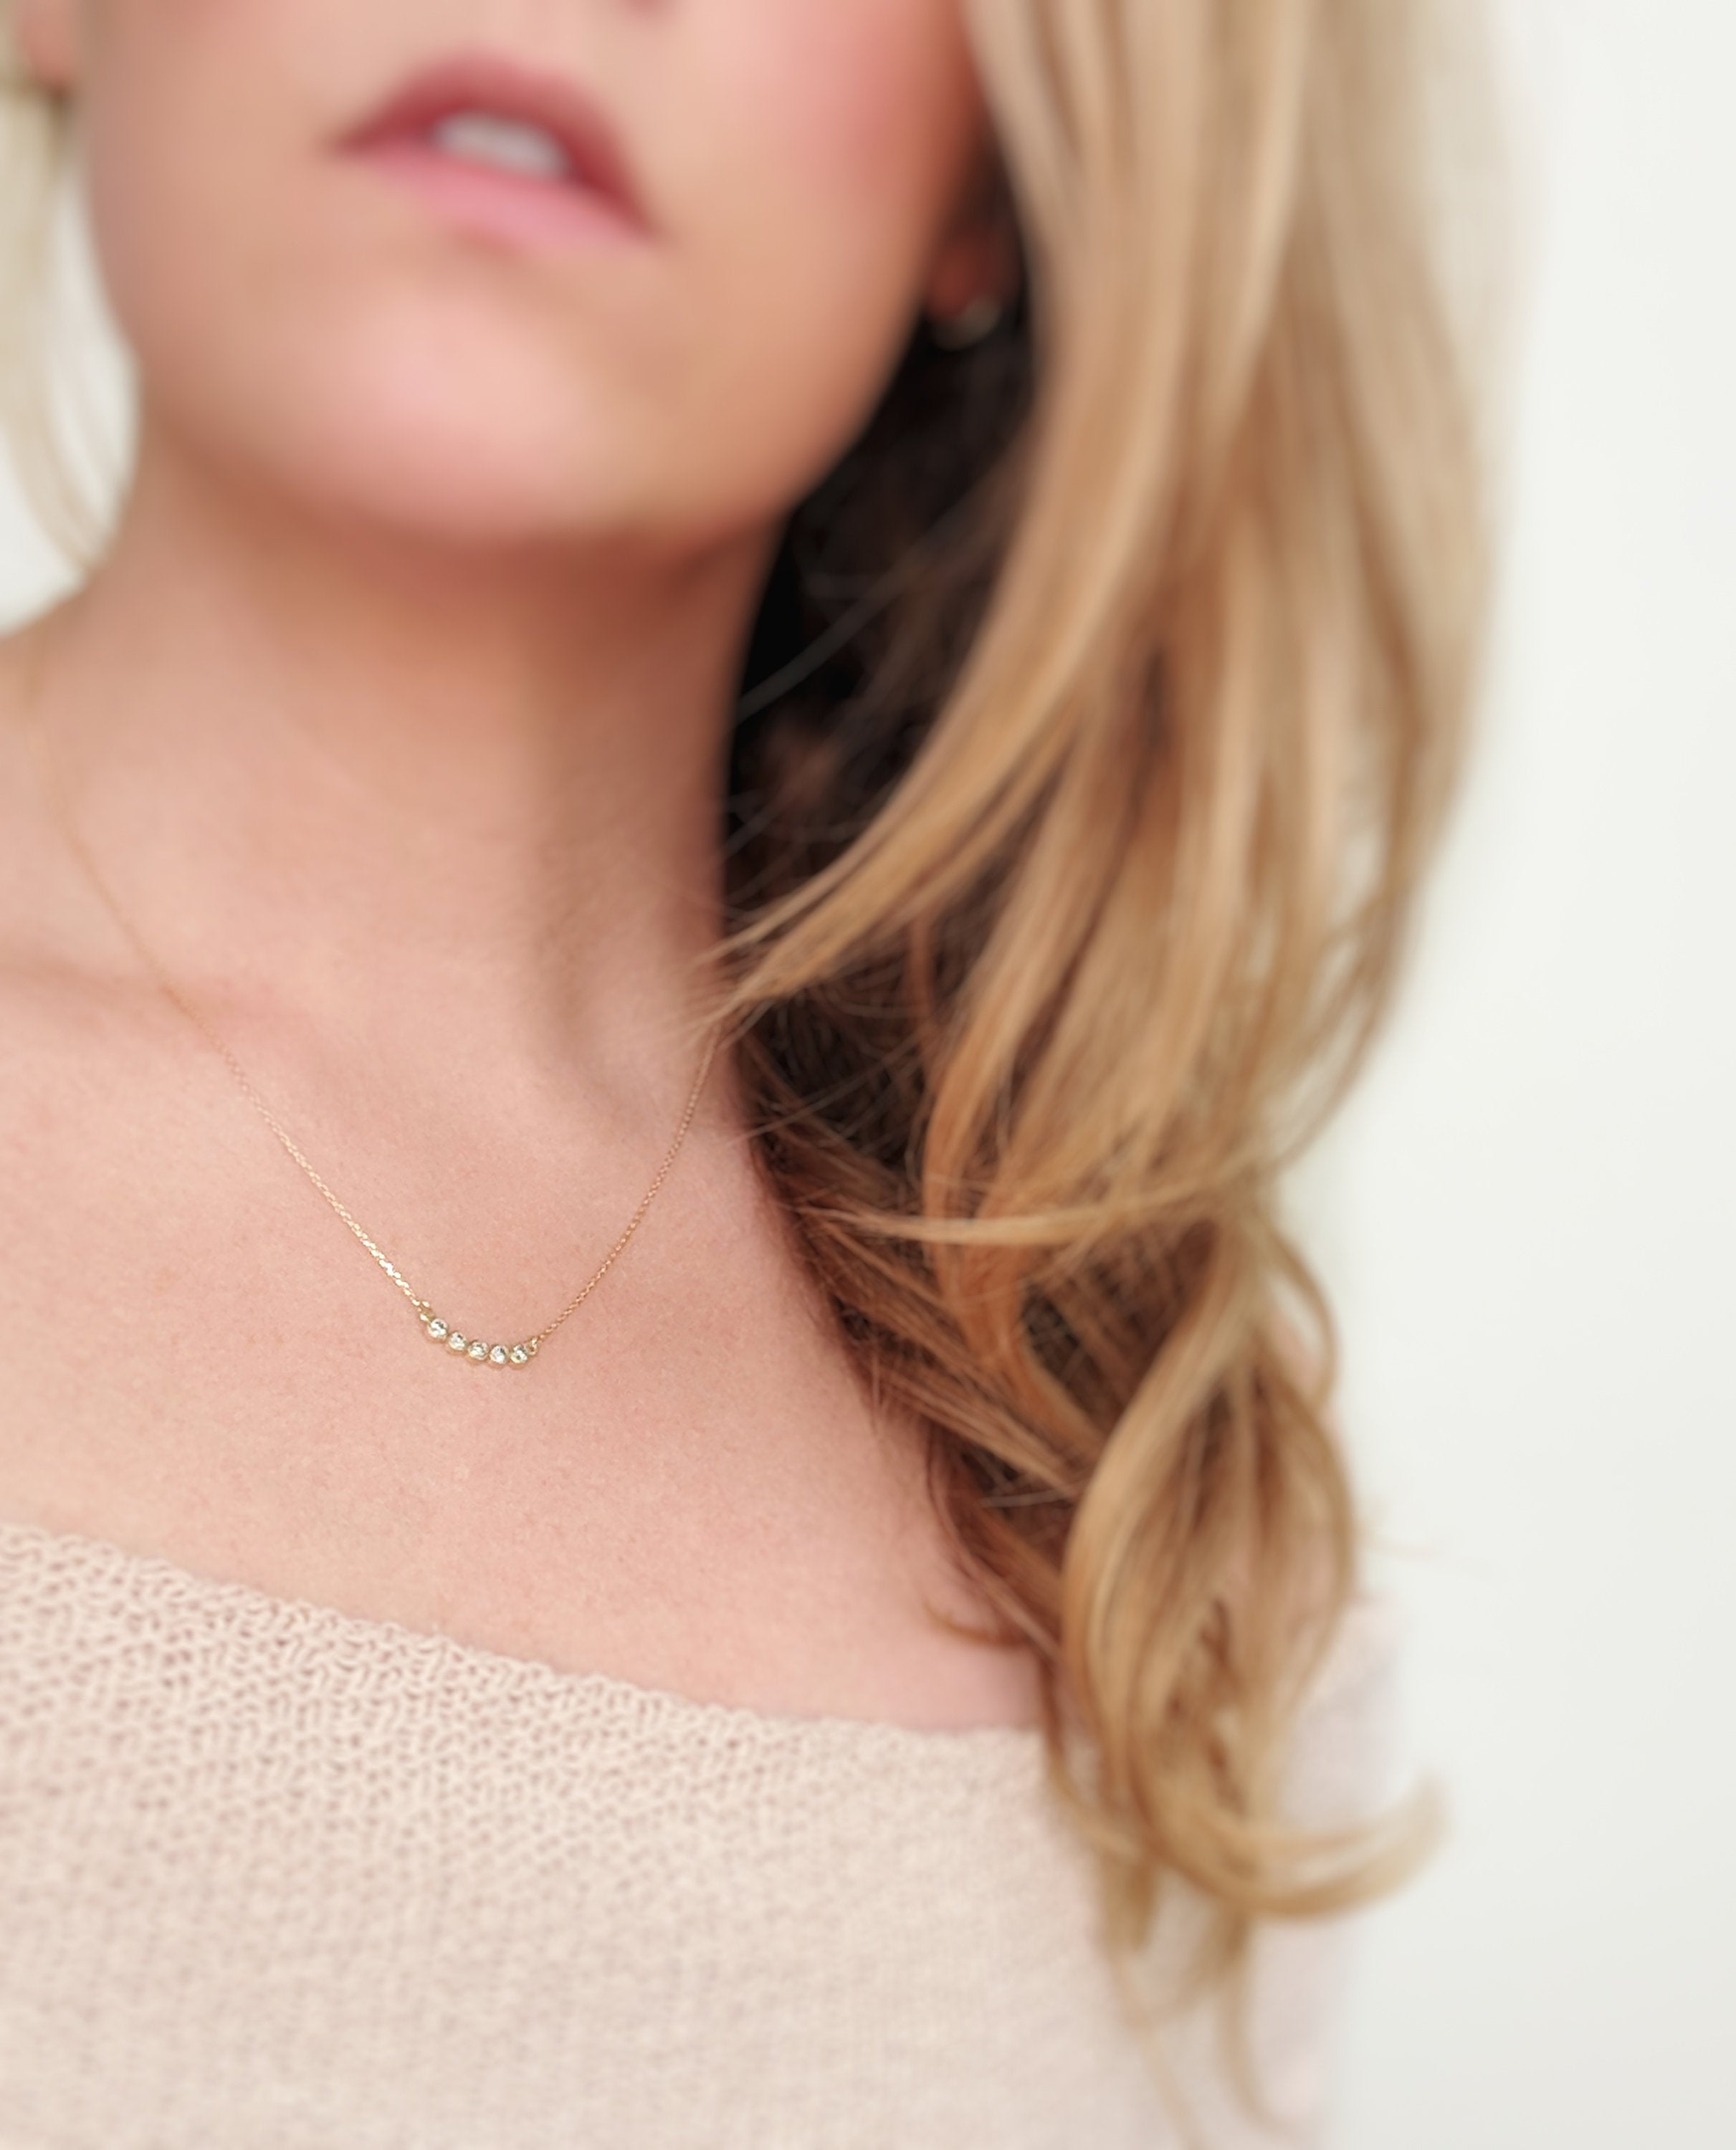 Salt & Pepper Diamond Arc Necklace in 14K Gold